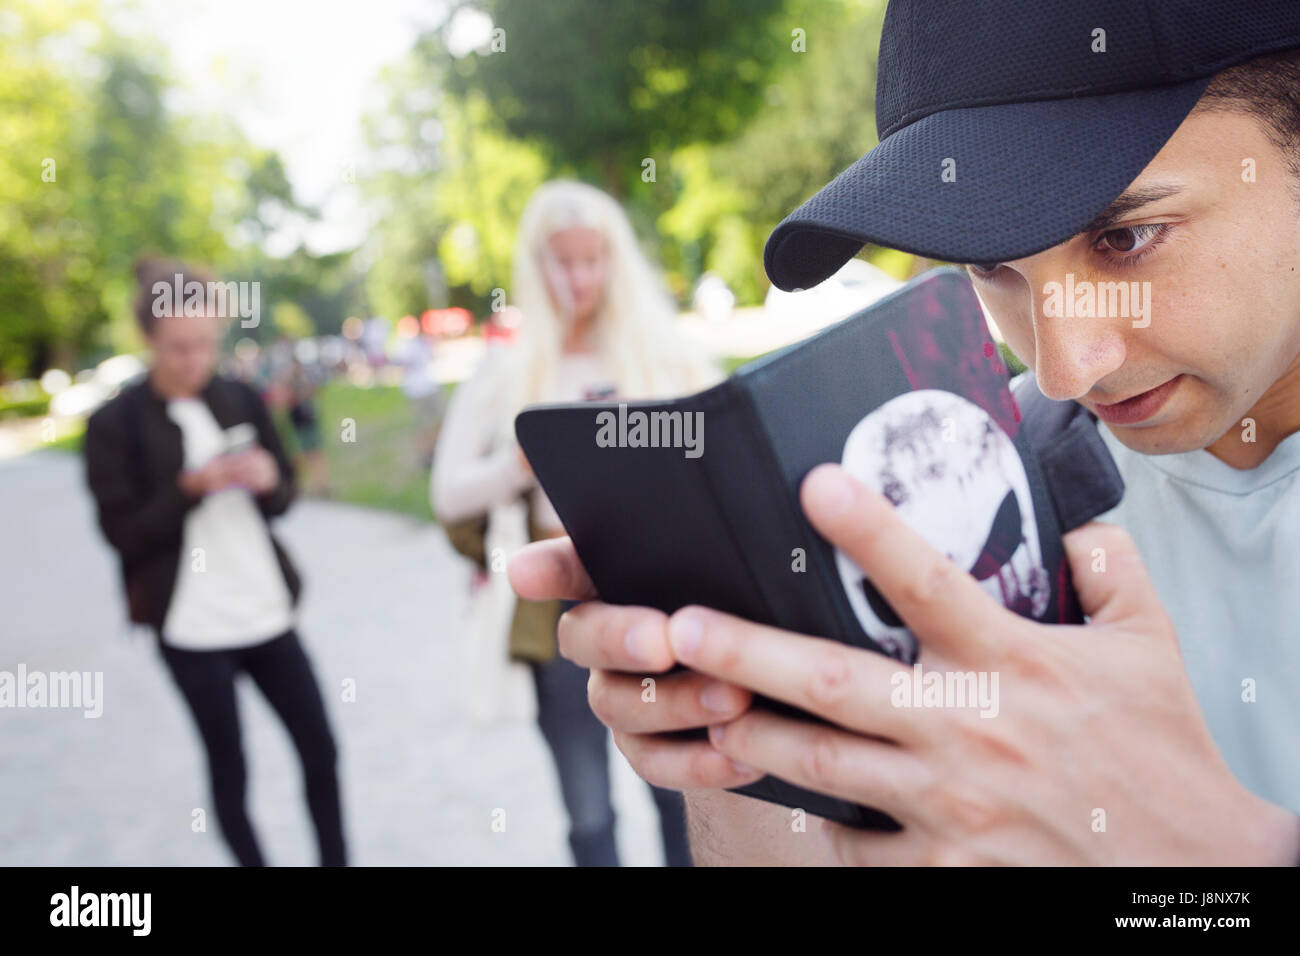 Group of friends playing augmented reality game with mobile phones Stock Photo